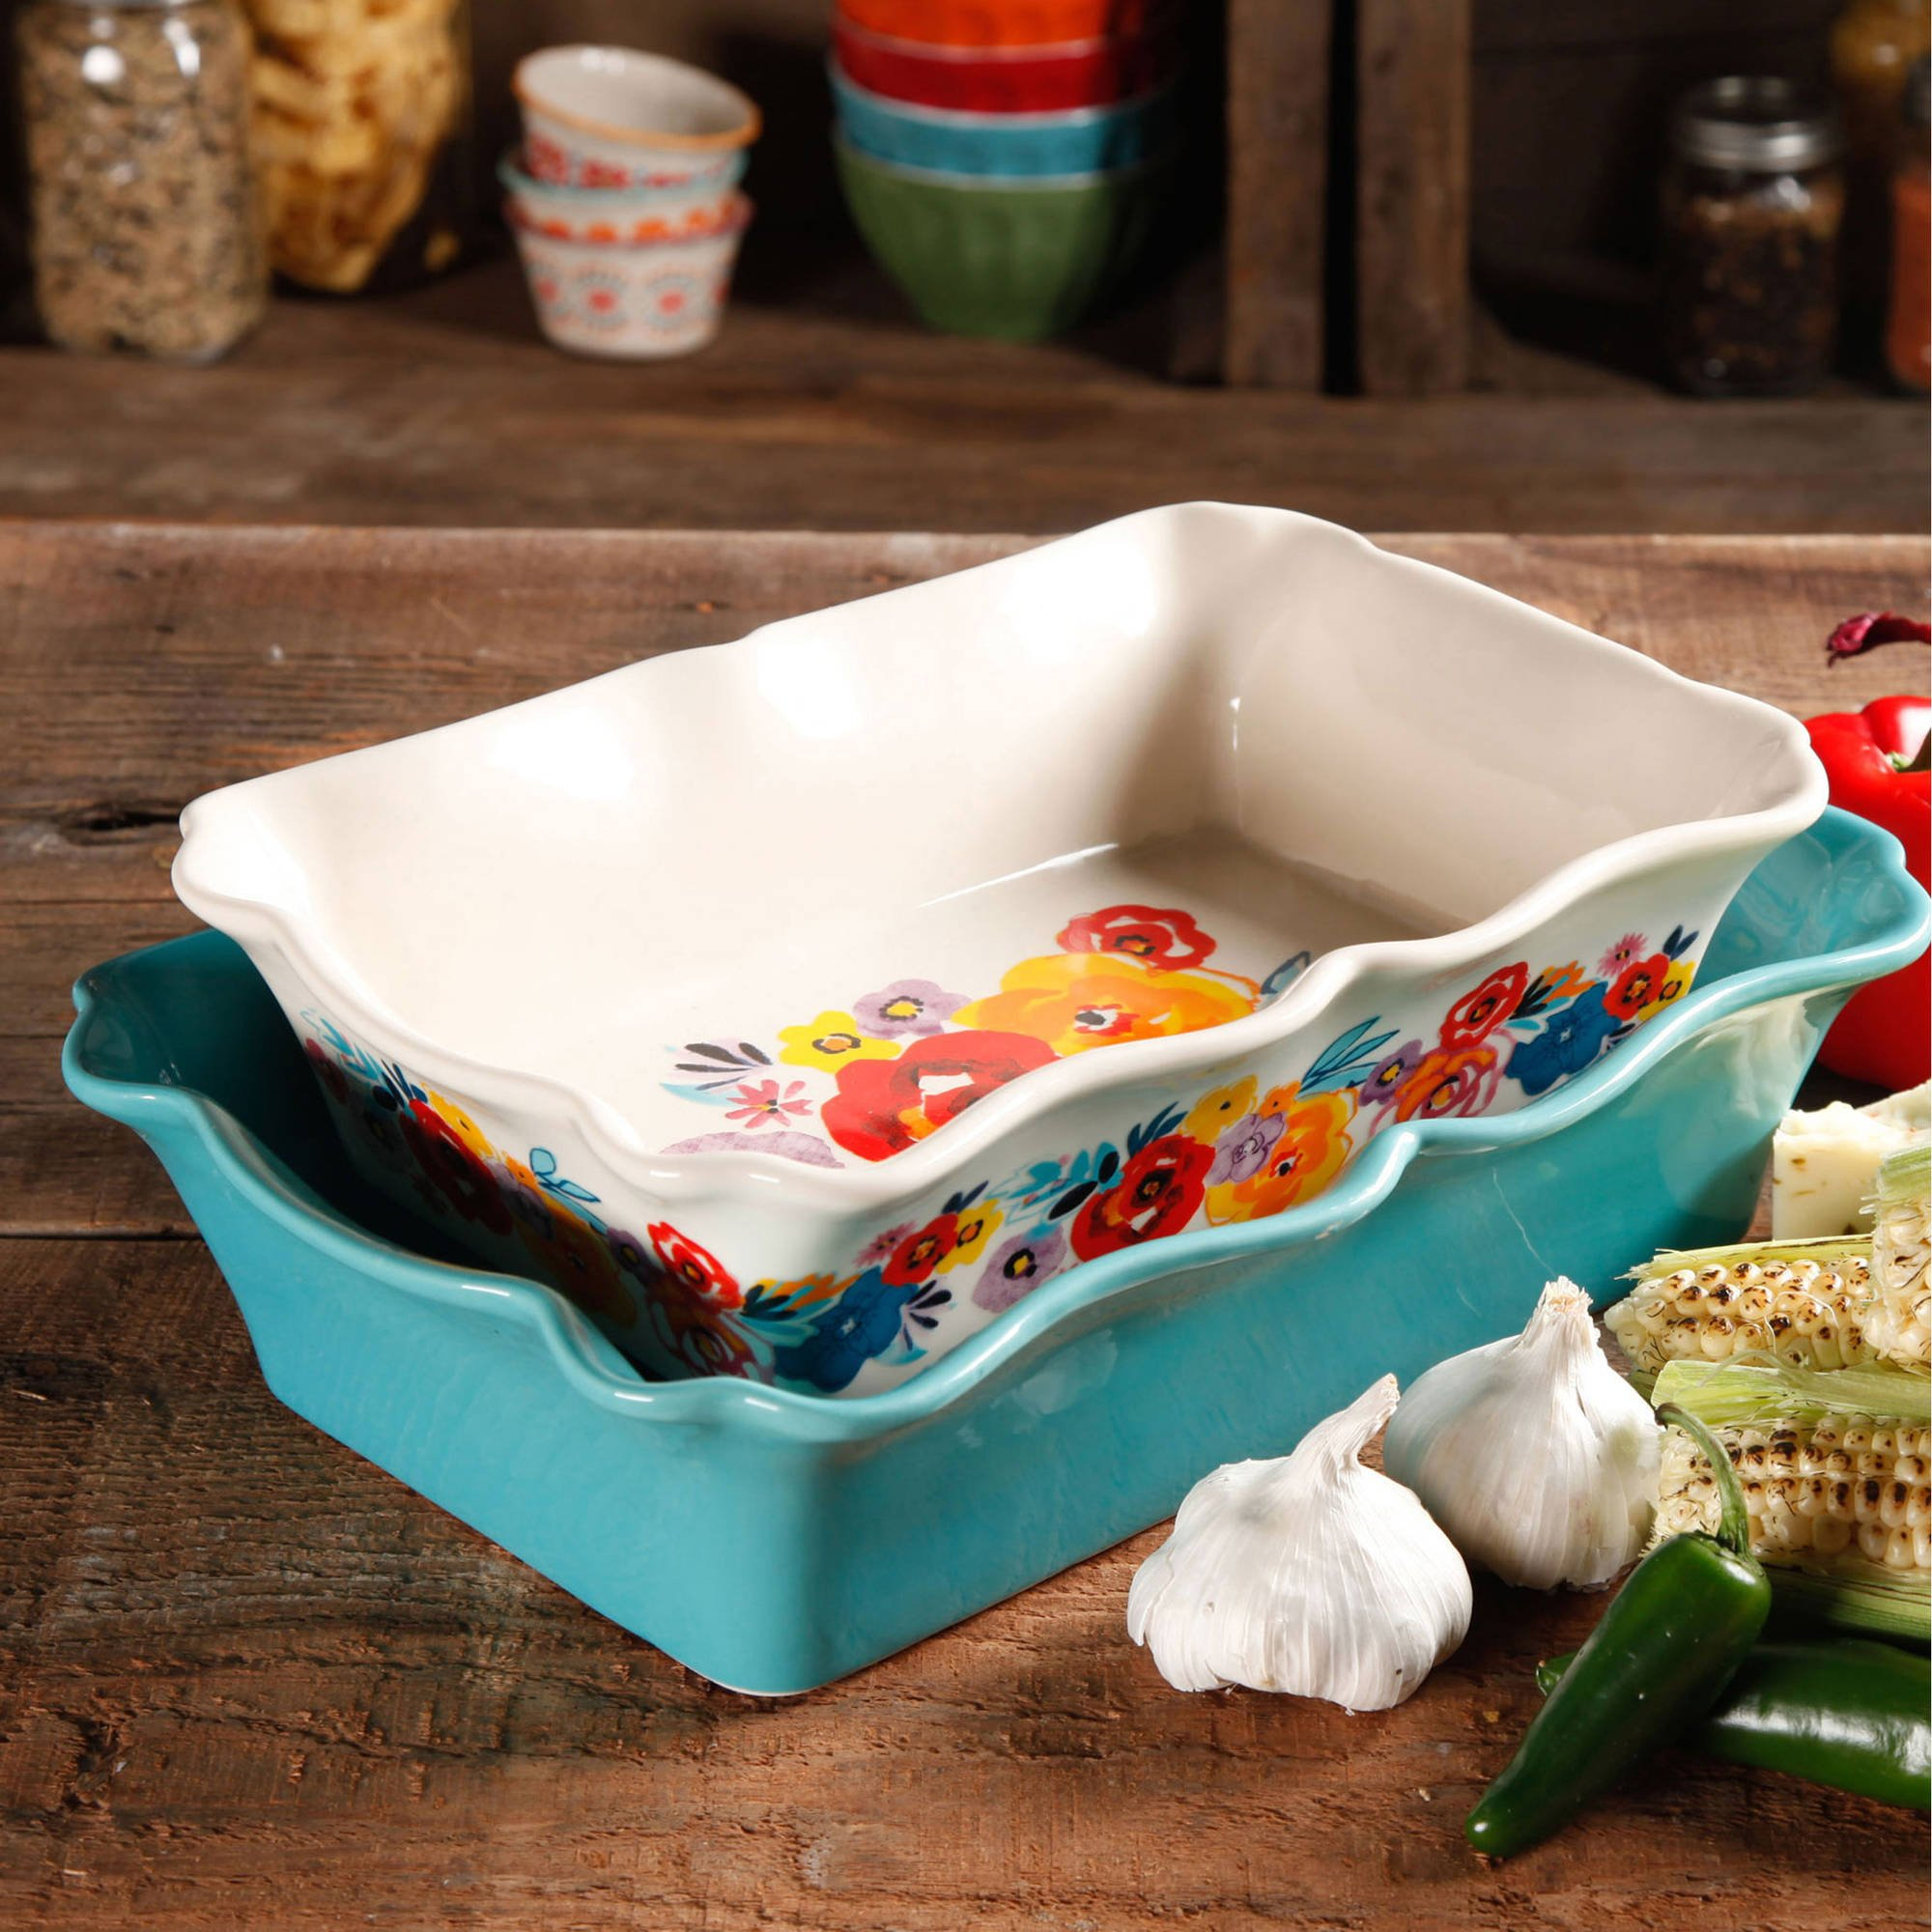 The Pioneer Woman 3.3 Quart Dazzling Dahlias Batter Bowl, 1-Piece bundle with The Pioneer Woman 2-Piece Rectangular Ruffle Top Ceramic Bakeware Set'' by The Pioneer Woman (Image #6)